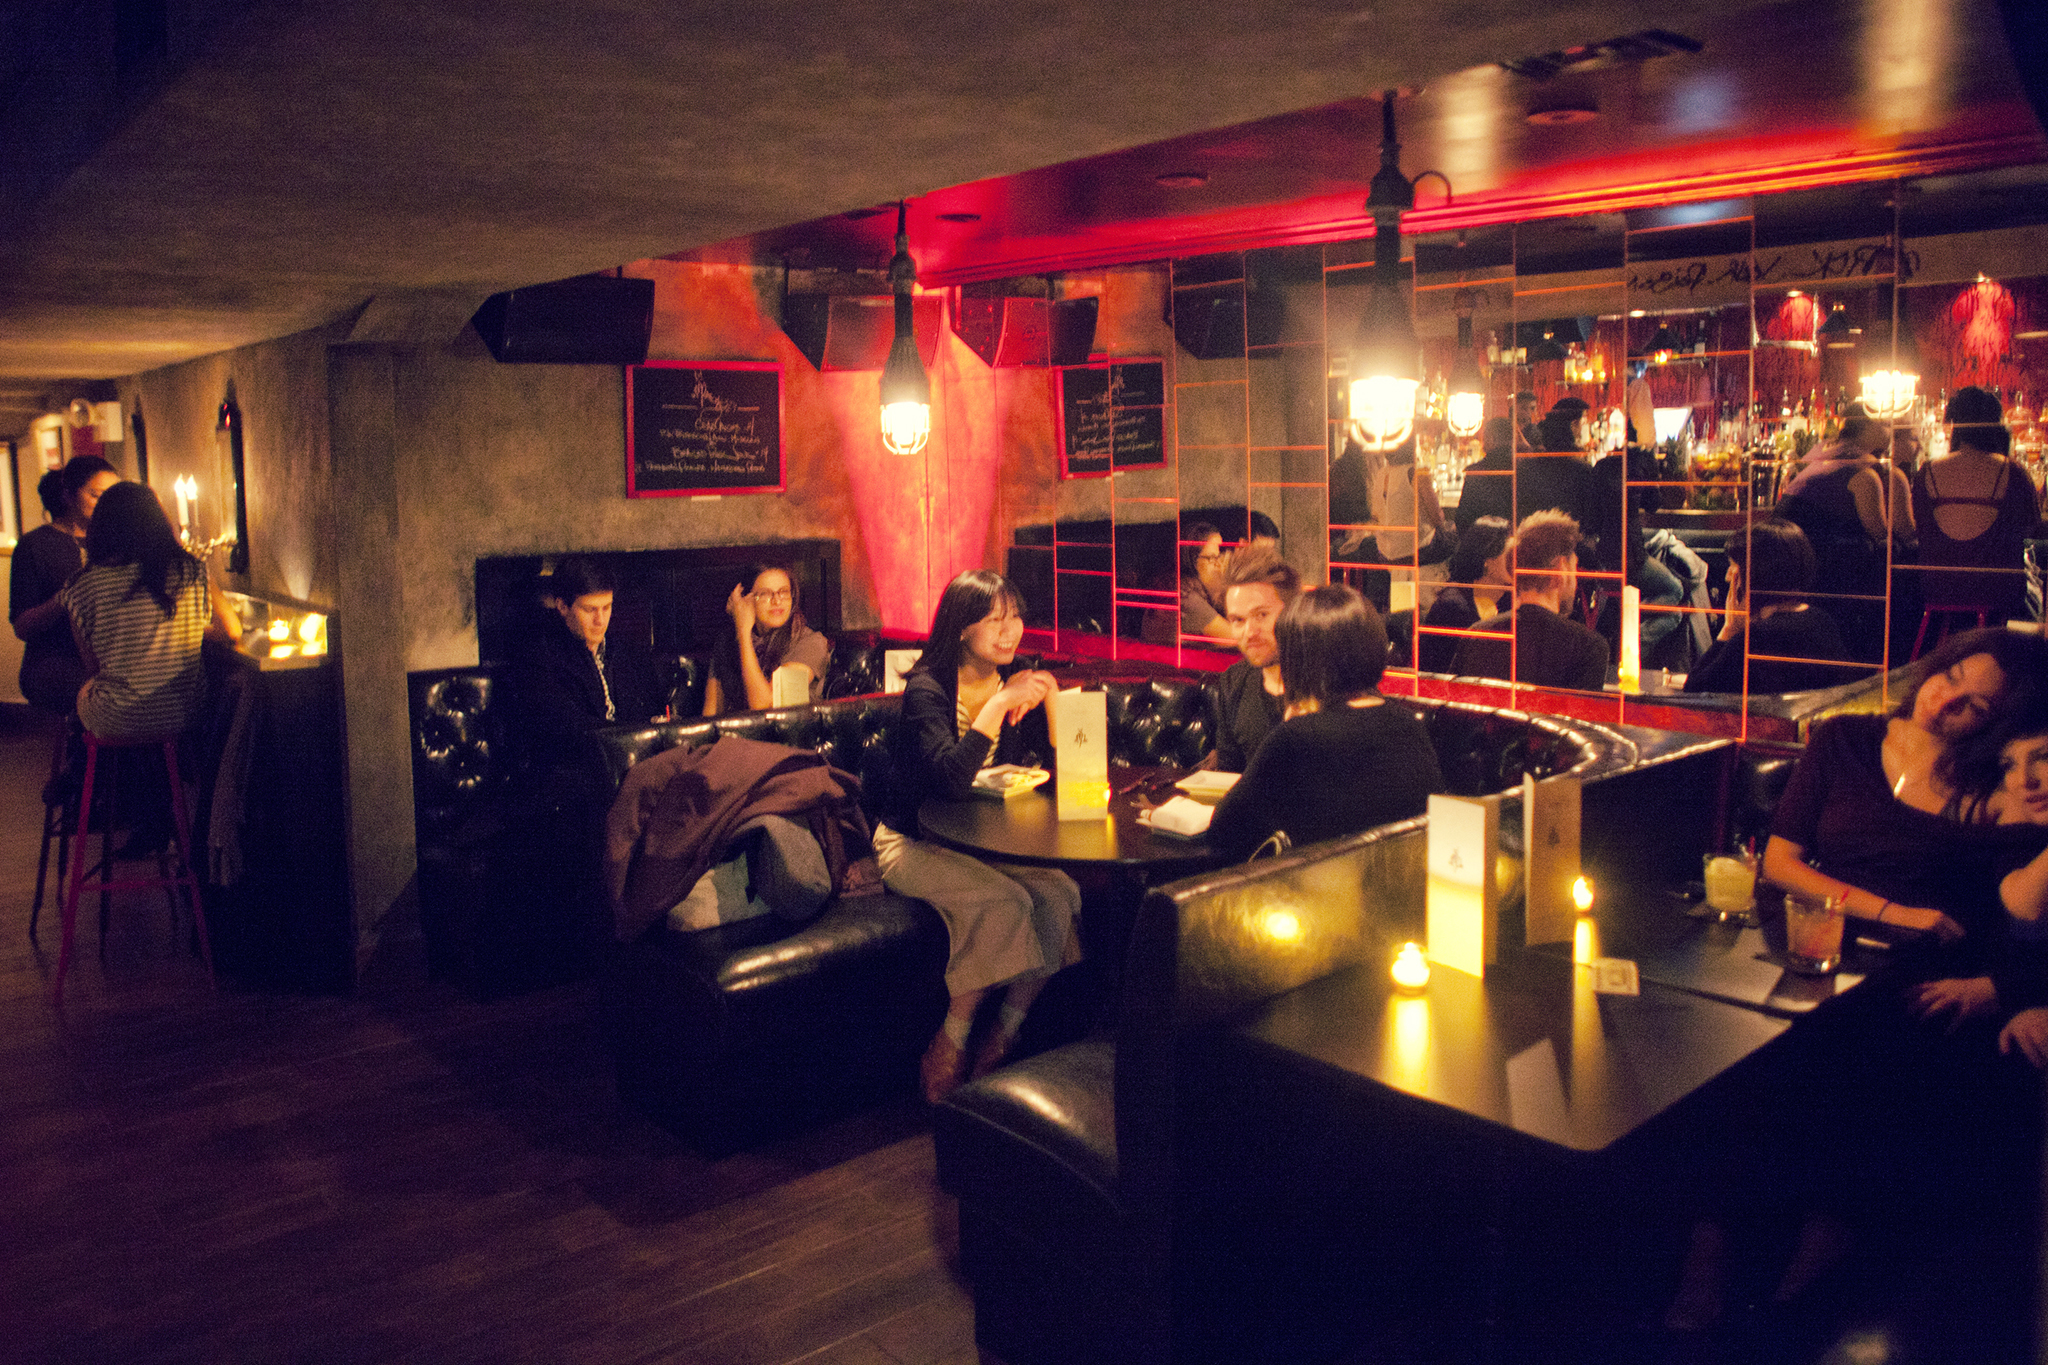 Best nightlife in Chinatown: The hottest clubs and DJ lounges